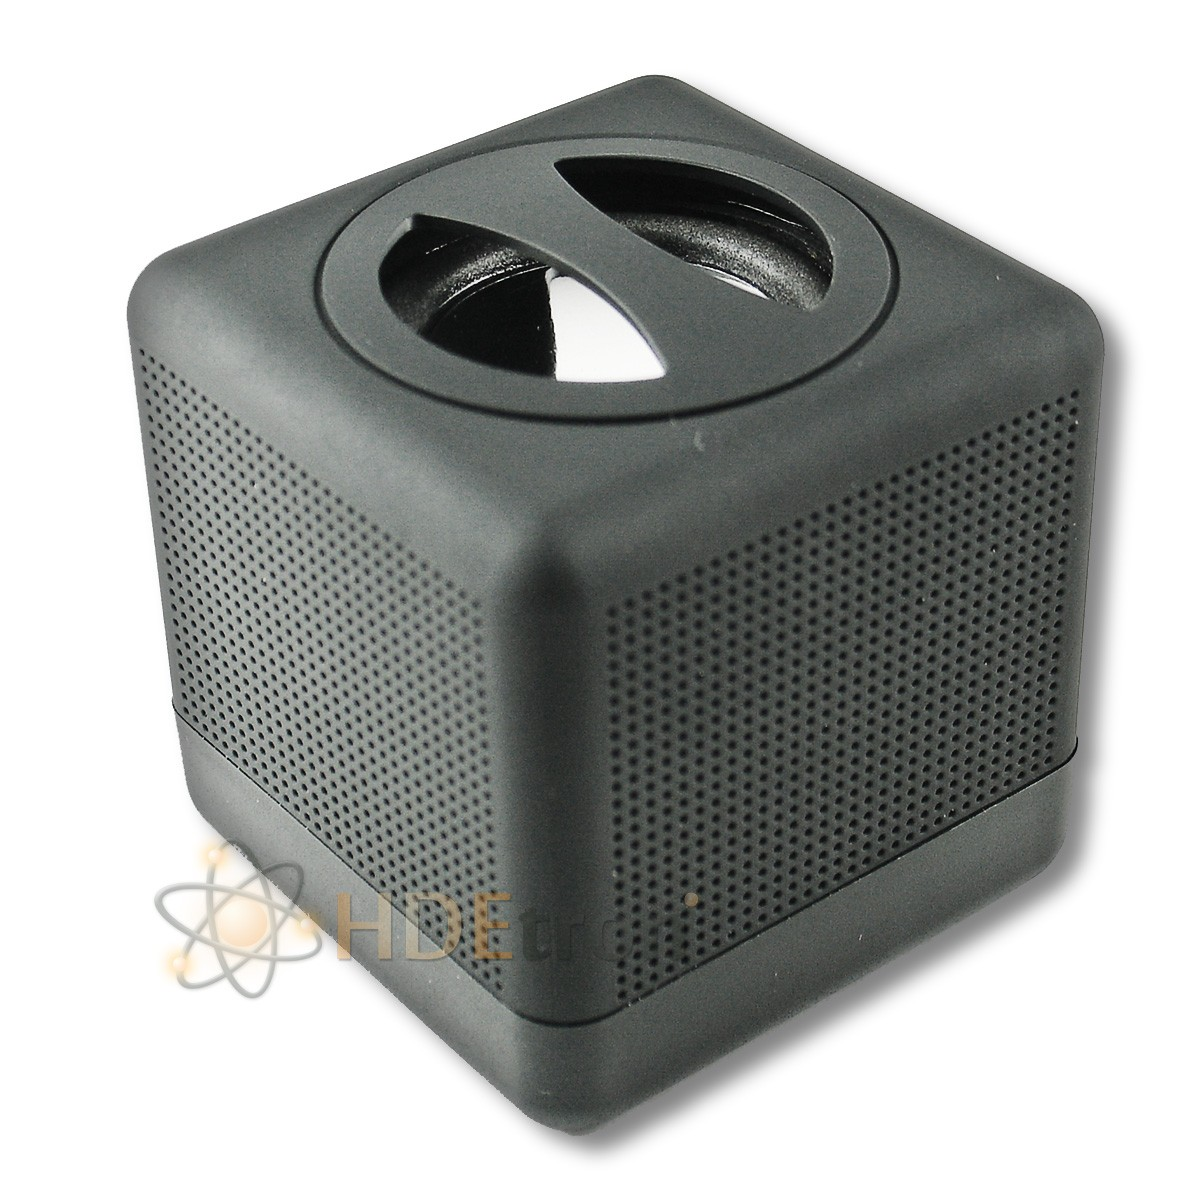 Axion Portable Bluetooth Speaker